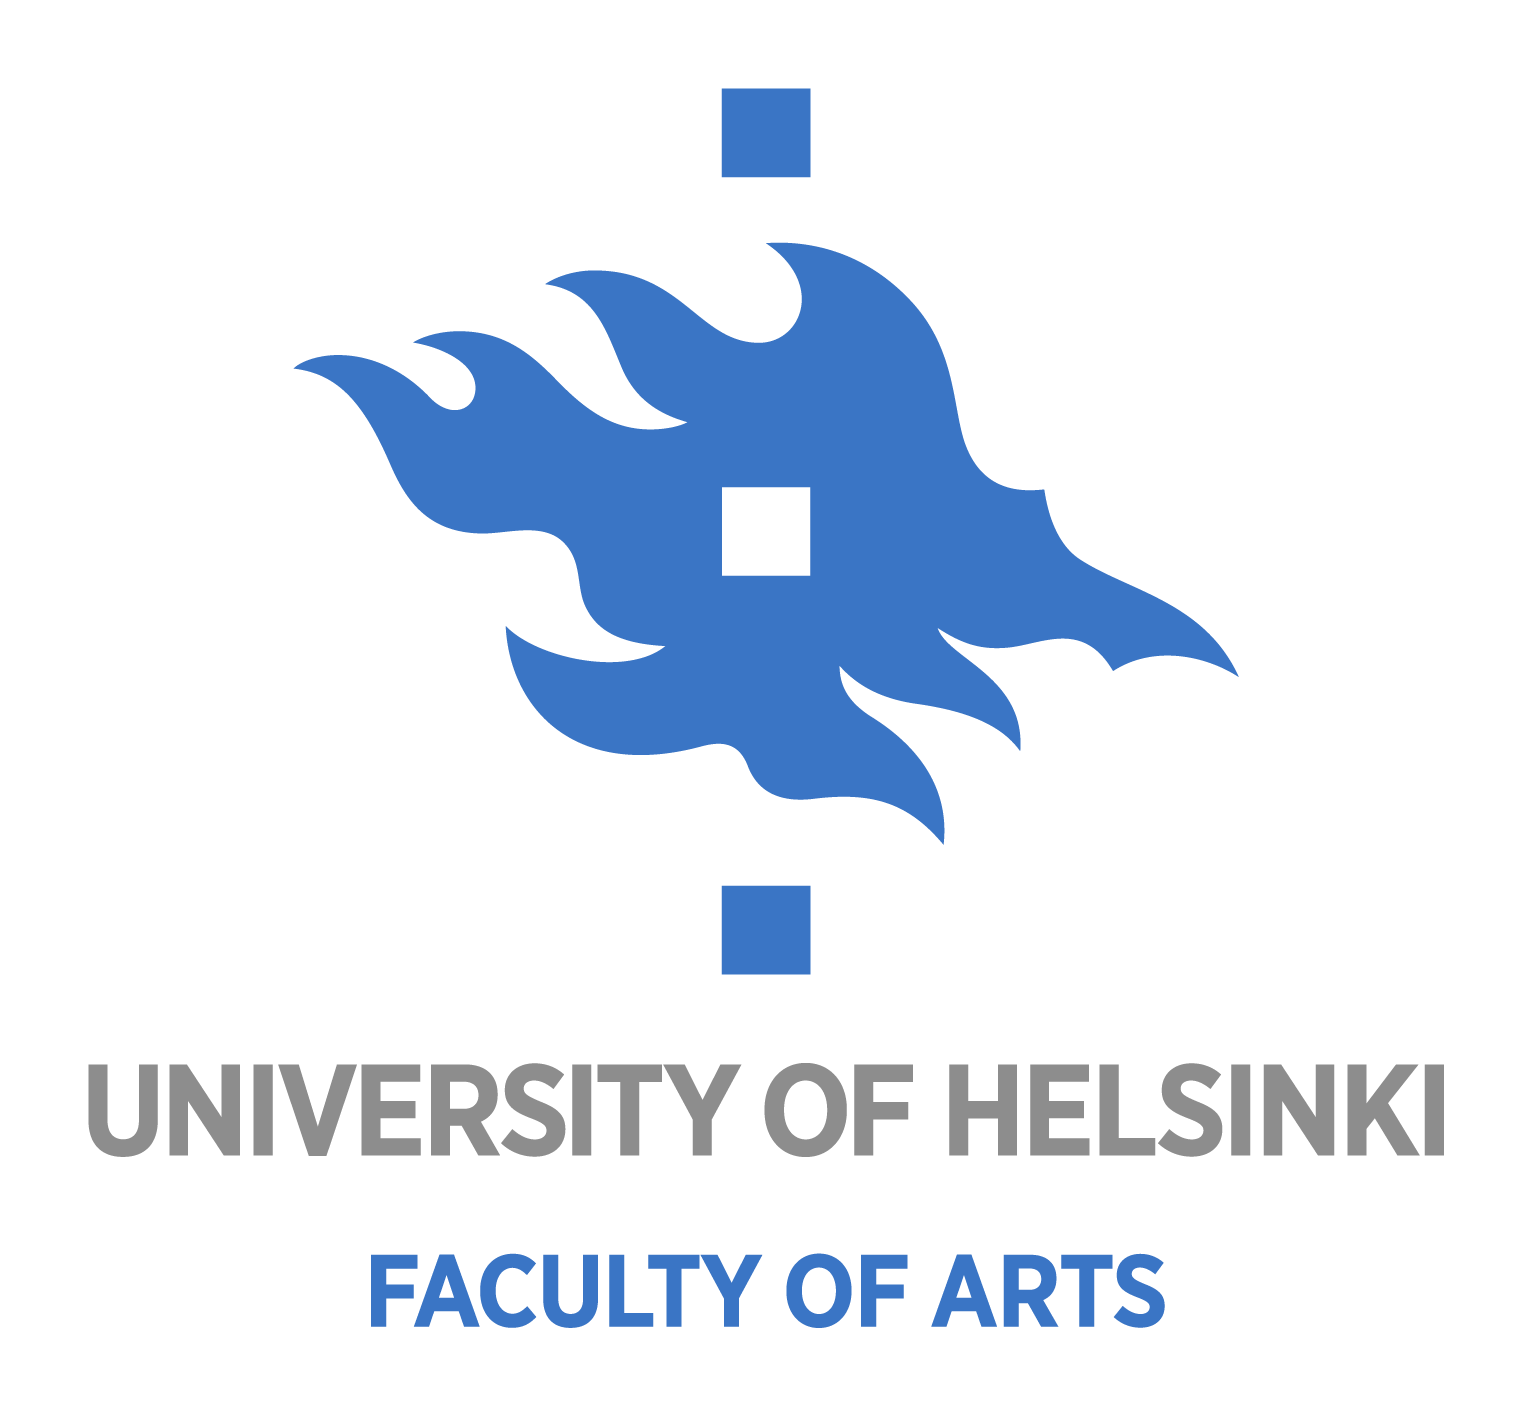 University Helsinki_logo_rgb_plunet academy program_translation management system